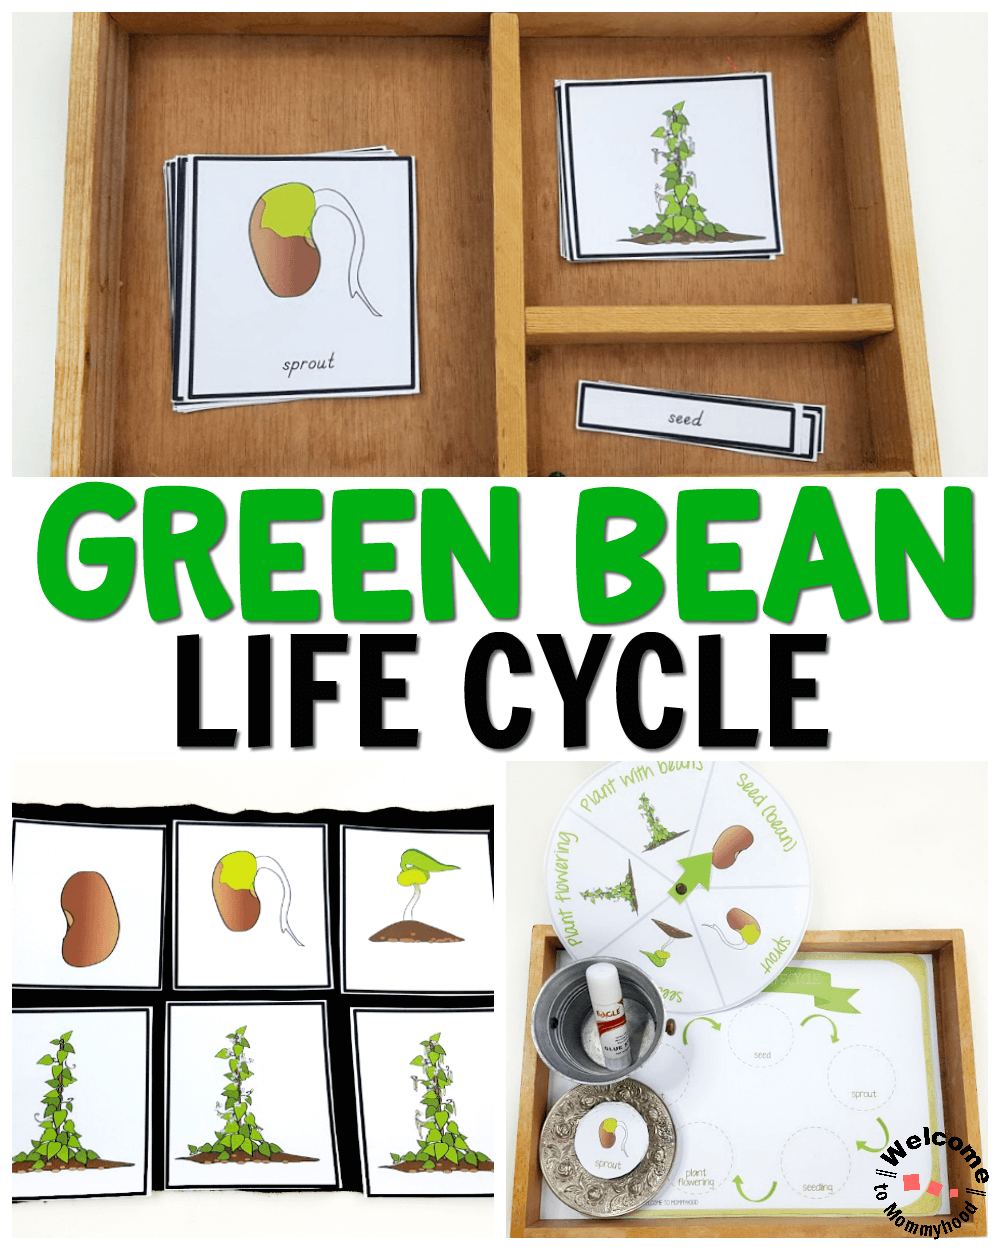 Use our green bean life cycle printables to create awesome hands-on learning activities your students will love! Perfect for fall and Thanksgiving!